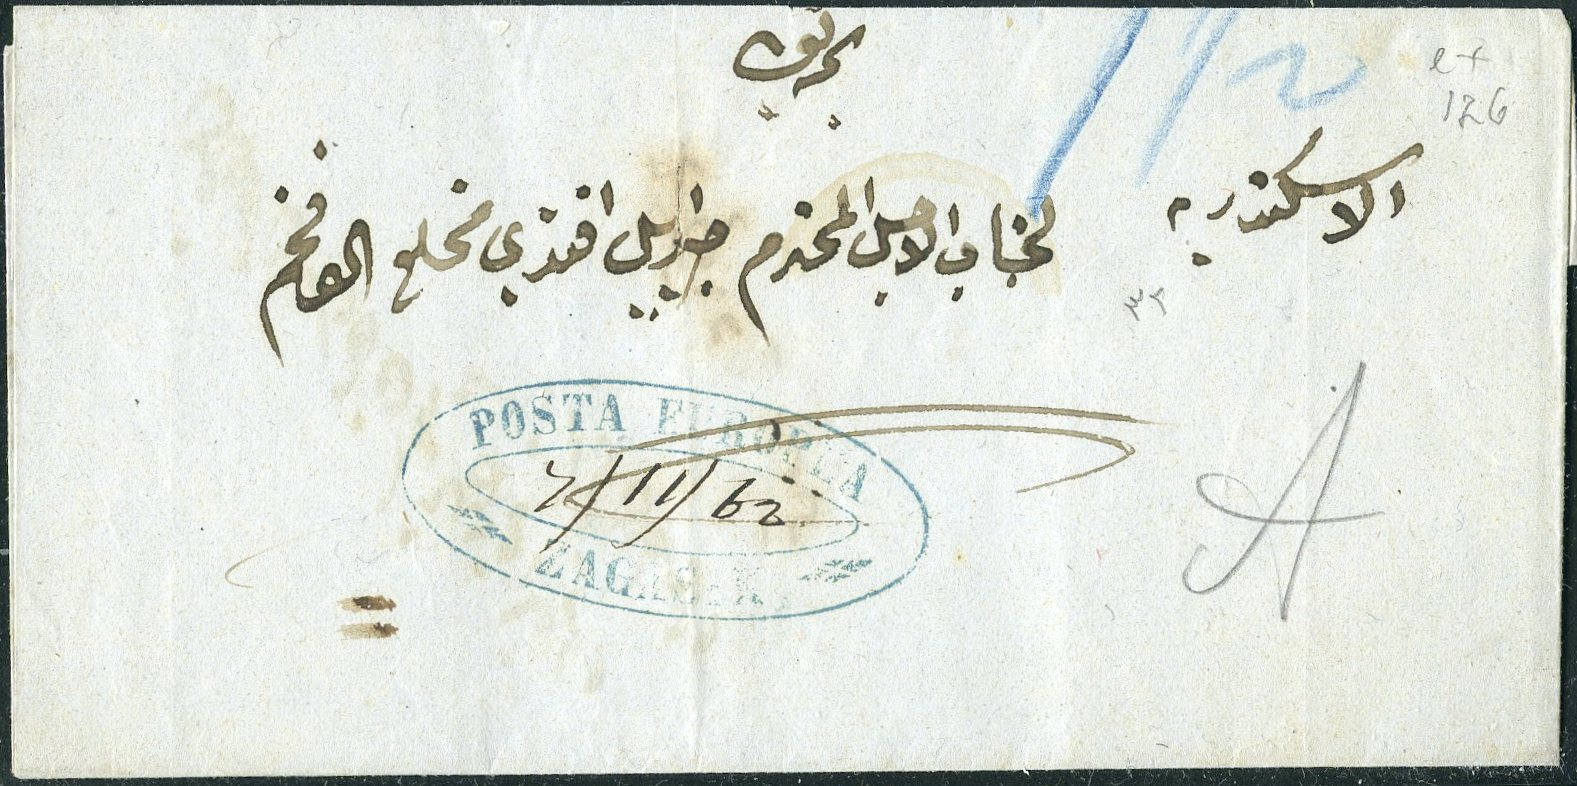 Lot 1 - FOREIGN COUNTRIES EGYPT  -  Tel Aviv Stamps Ltd. Auction #49